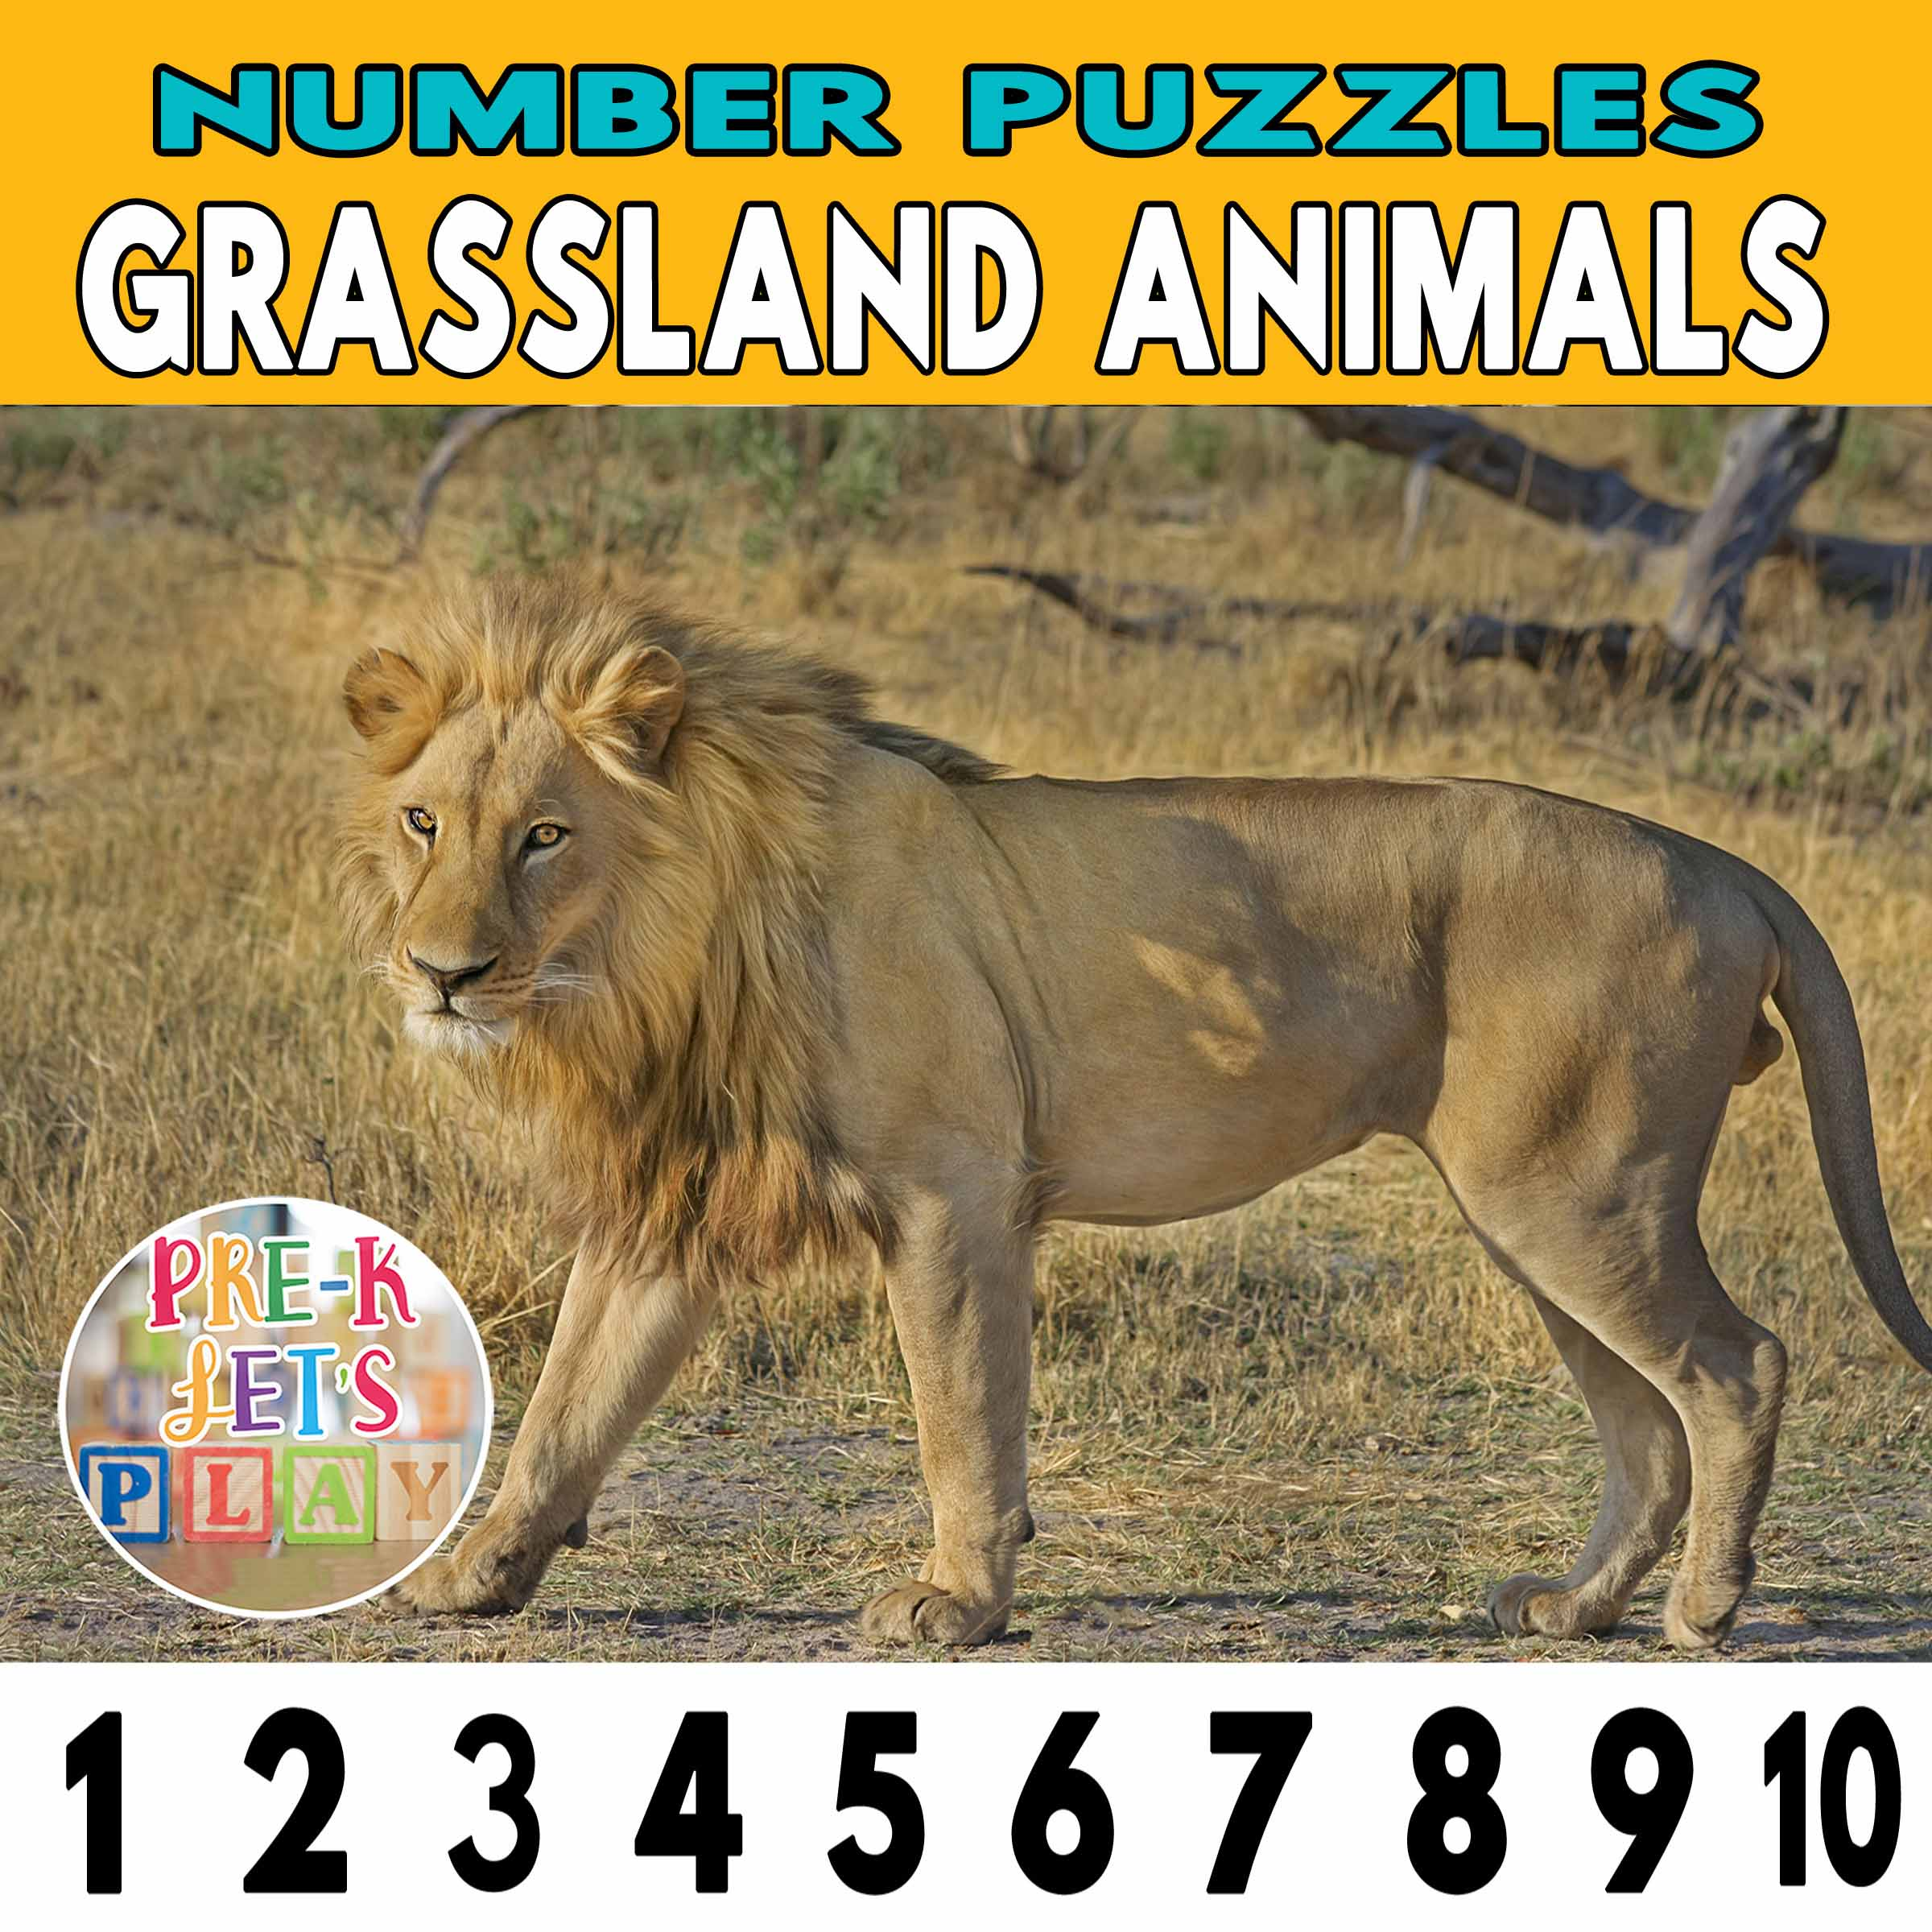 number strip puzzle cover of a lion. This counting game activity helps kids practice number recognition and identify other grassland animals.